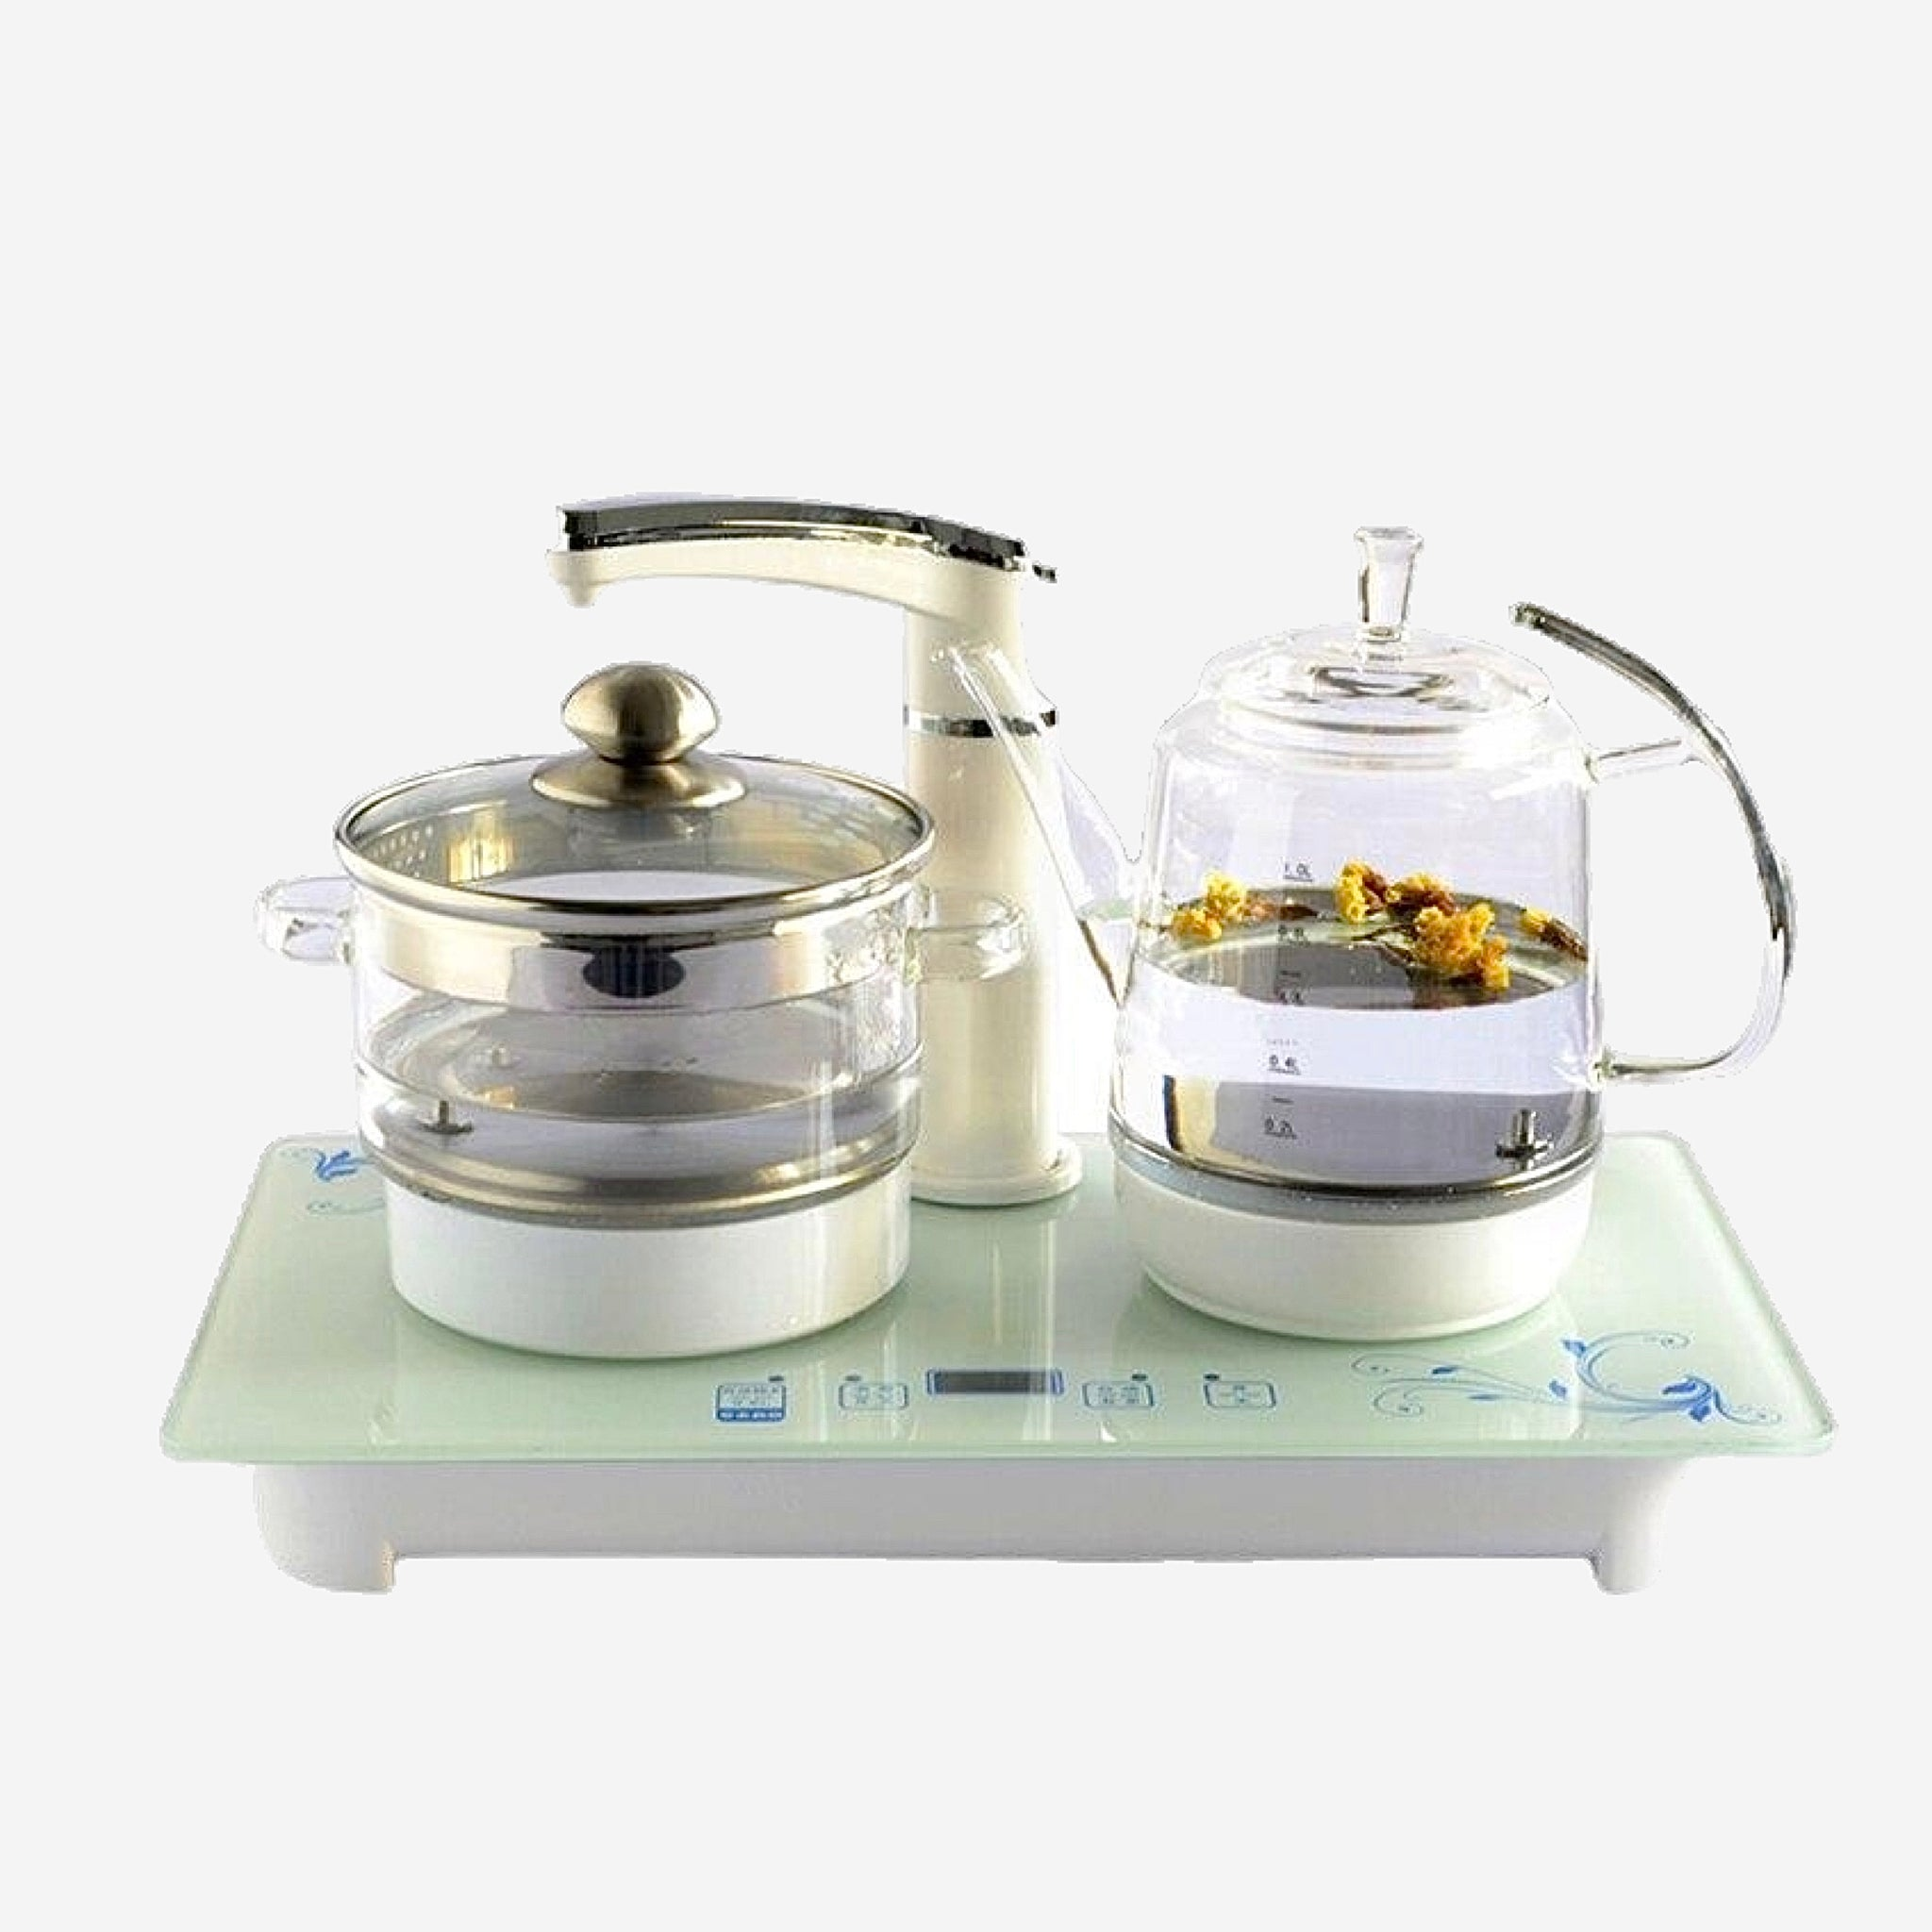 Electric Faucet Kettle Tea Set Smart glass raising pot flower teapot automatic upper water sets Kitchen Appliance Trend